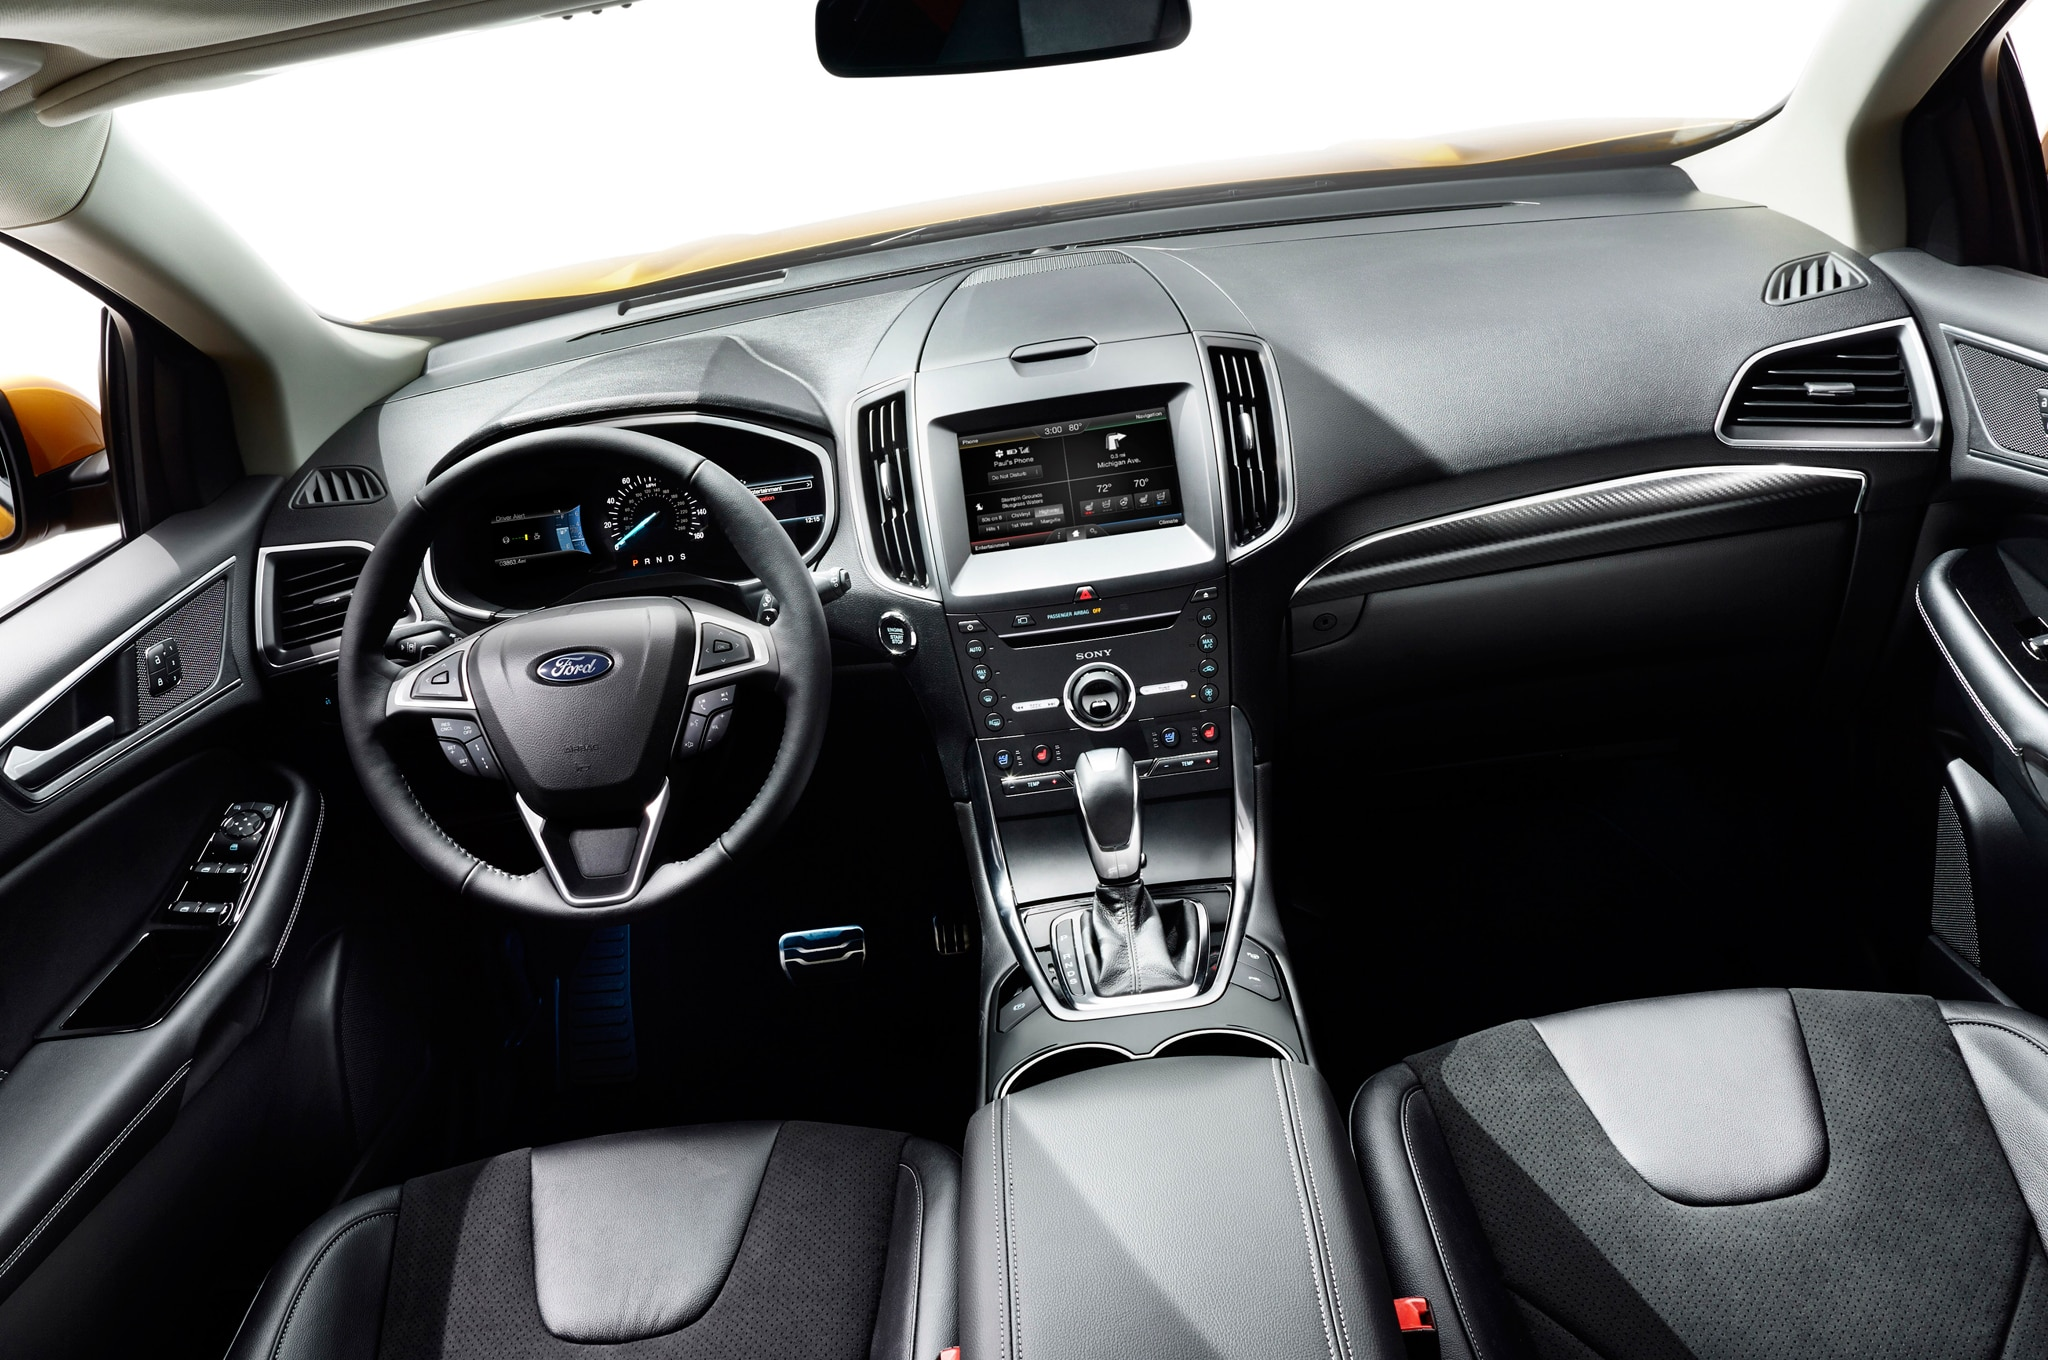 2015 Ford Edge Sport interior view 2015 ford edge powertrains detailed Sony Wiring Harness Colors at eliteediting.co